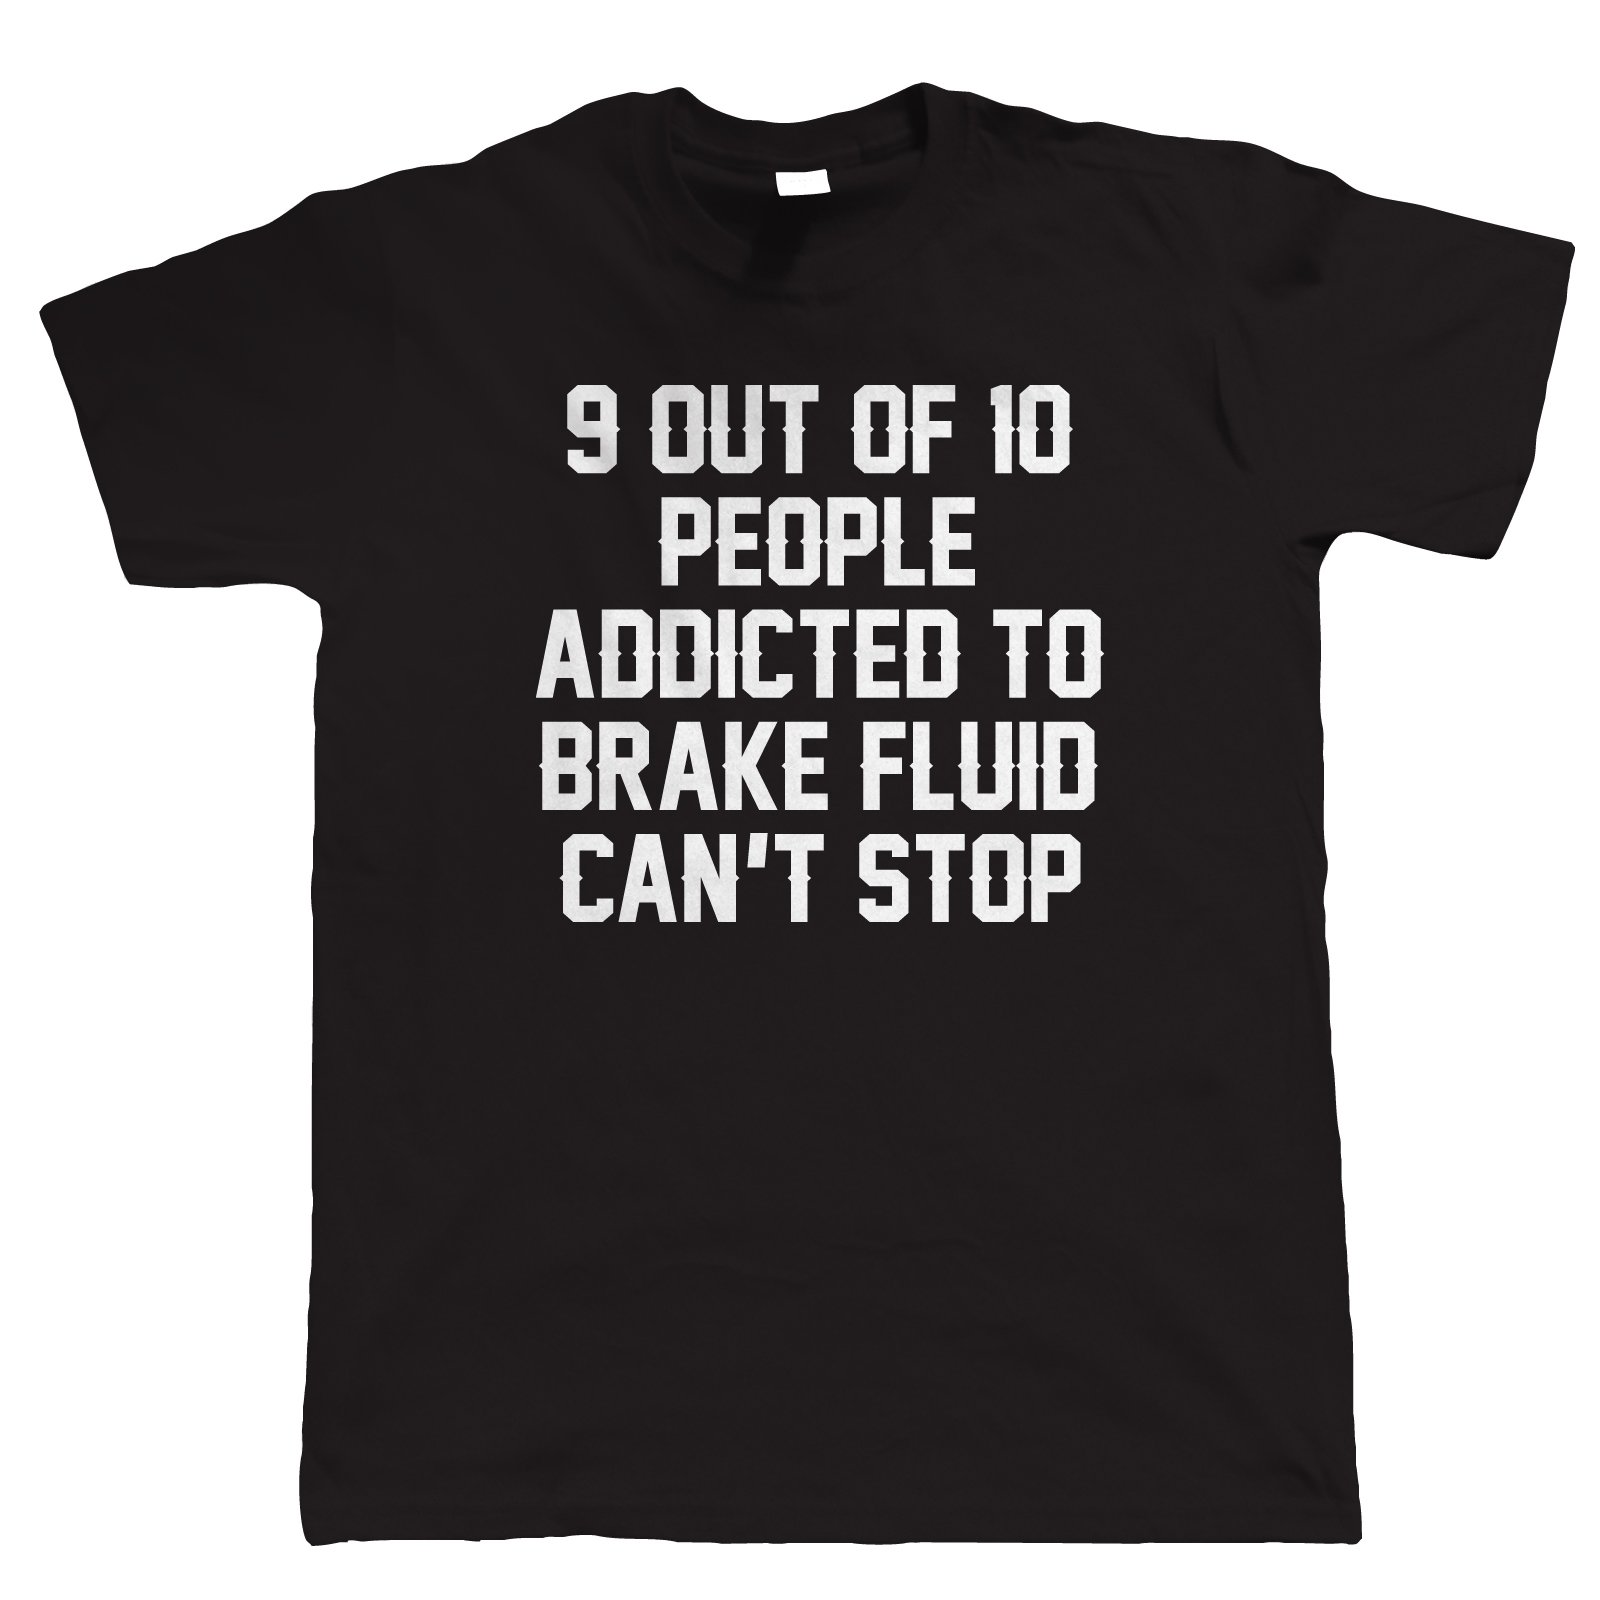 Addicted to FRENO FLUID Maglietta Divertente da uomo - Biker AUTO Campervan